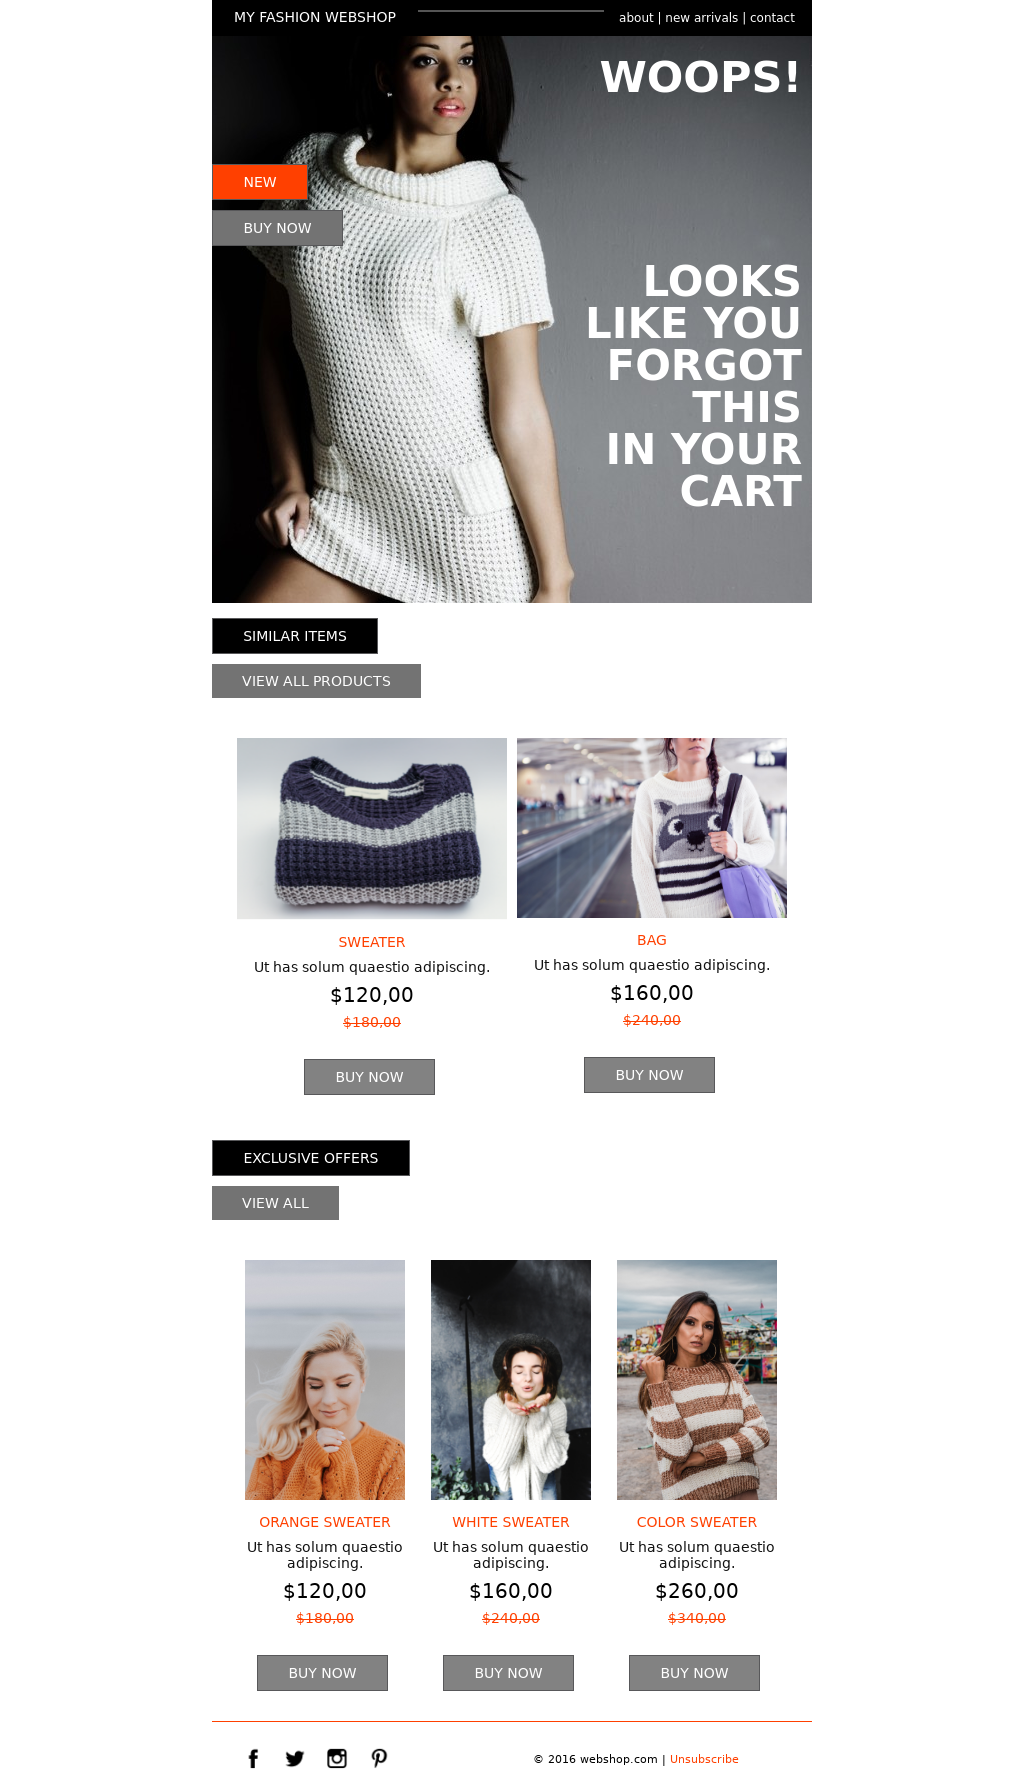 Fashionable Promo Cart Abandonment Email Template